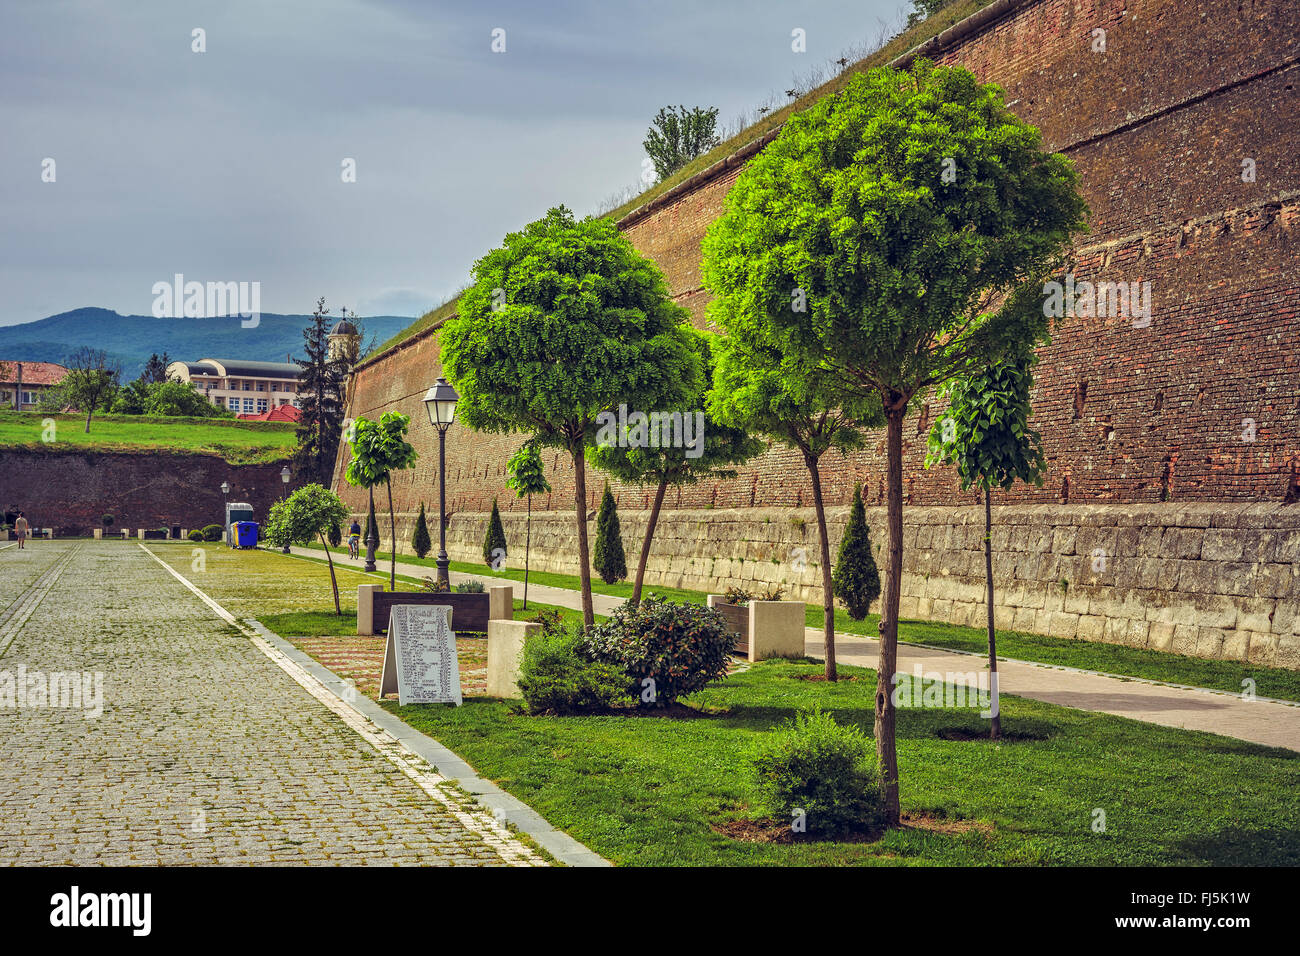 ALBA IULIA, ROMANIA - MAY 6, 2015: The fortification walls (about 12 km in perimeter) and promenades of the bulwark - Stock Image